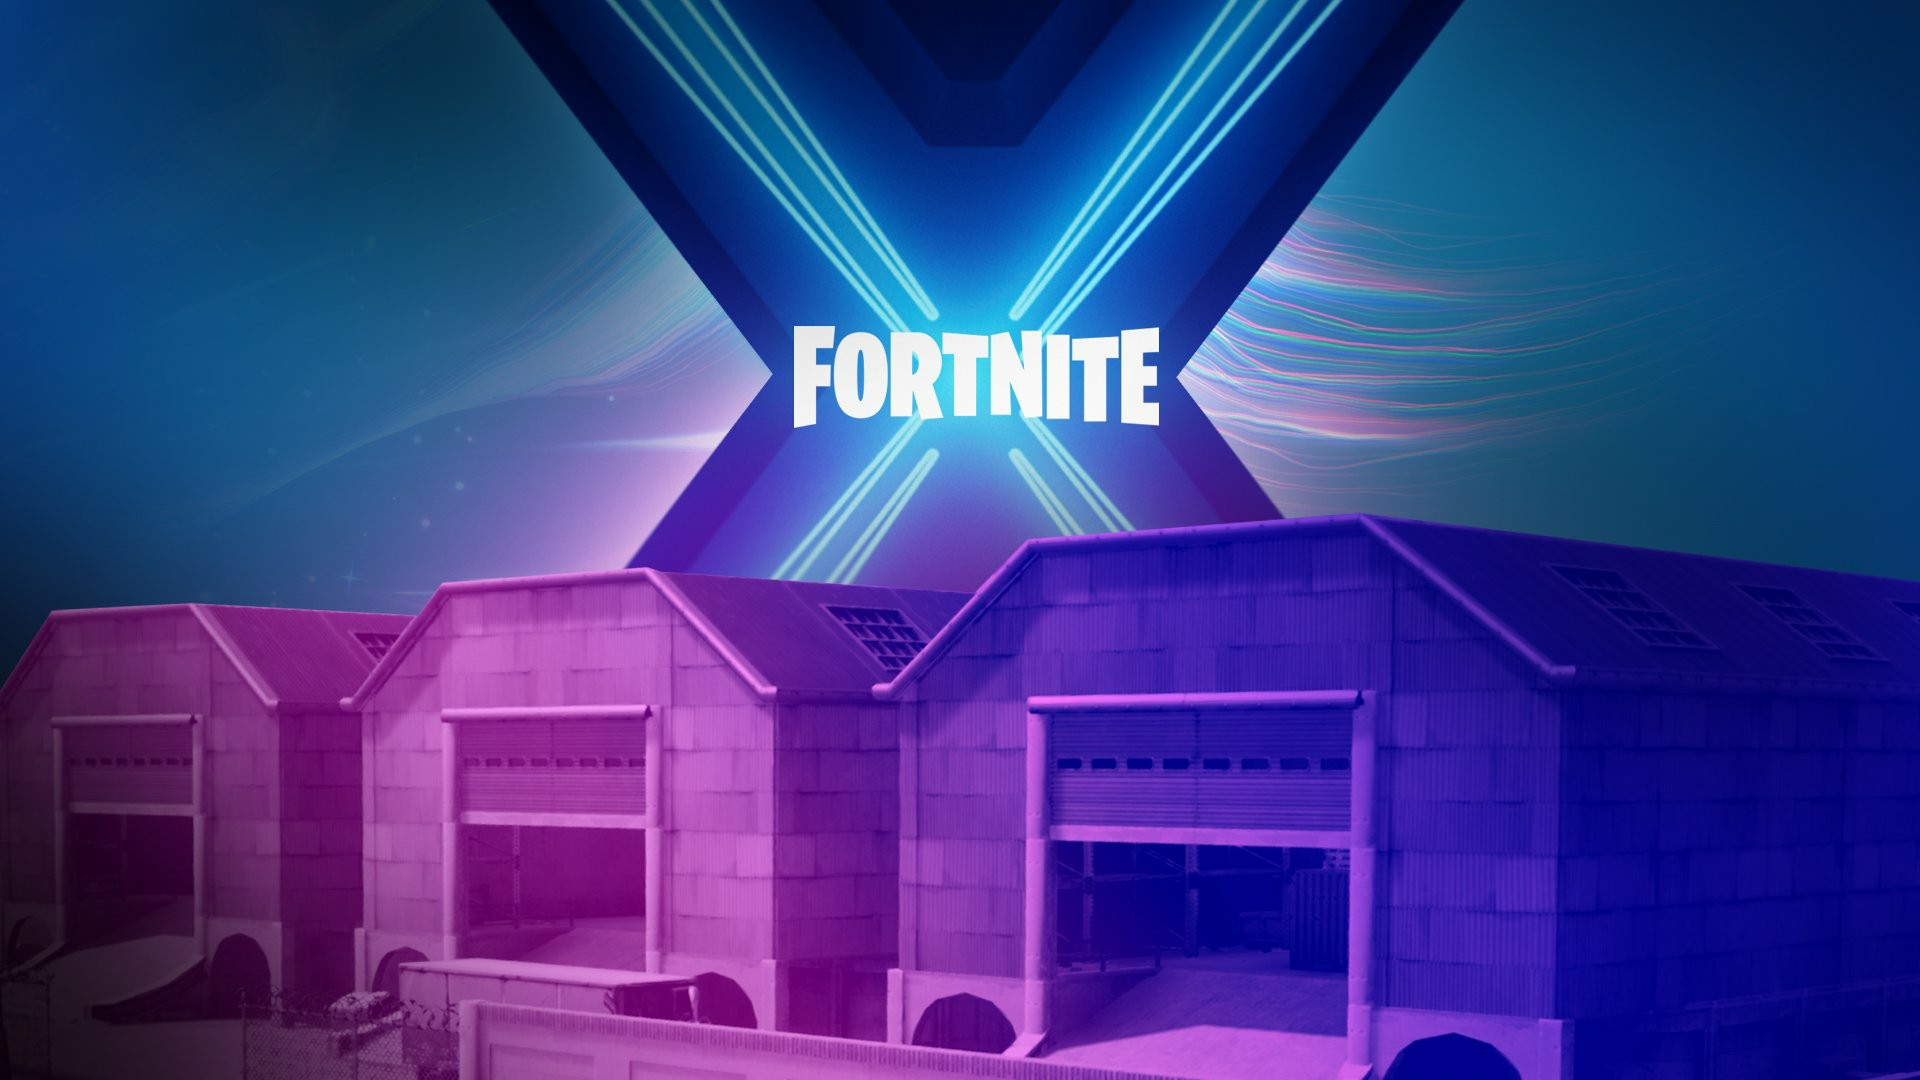 Fortnite Season 10 Launches This Week, And Its First Teaser Reveals The Return Of A Fan-Favorite Location